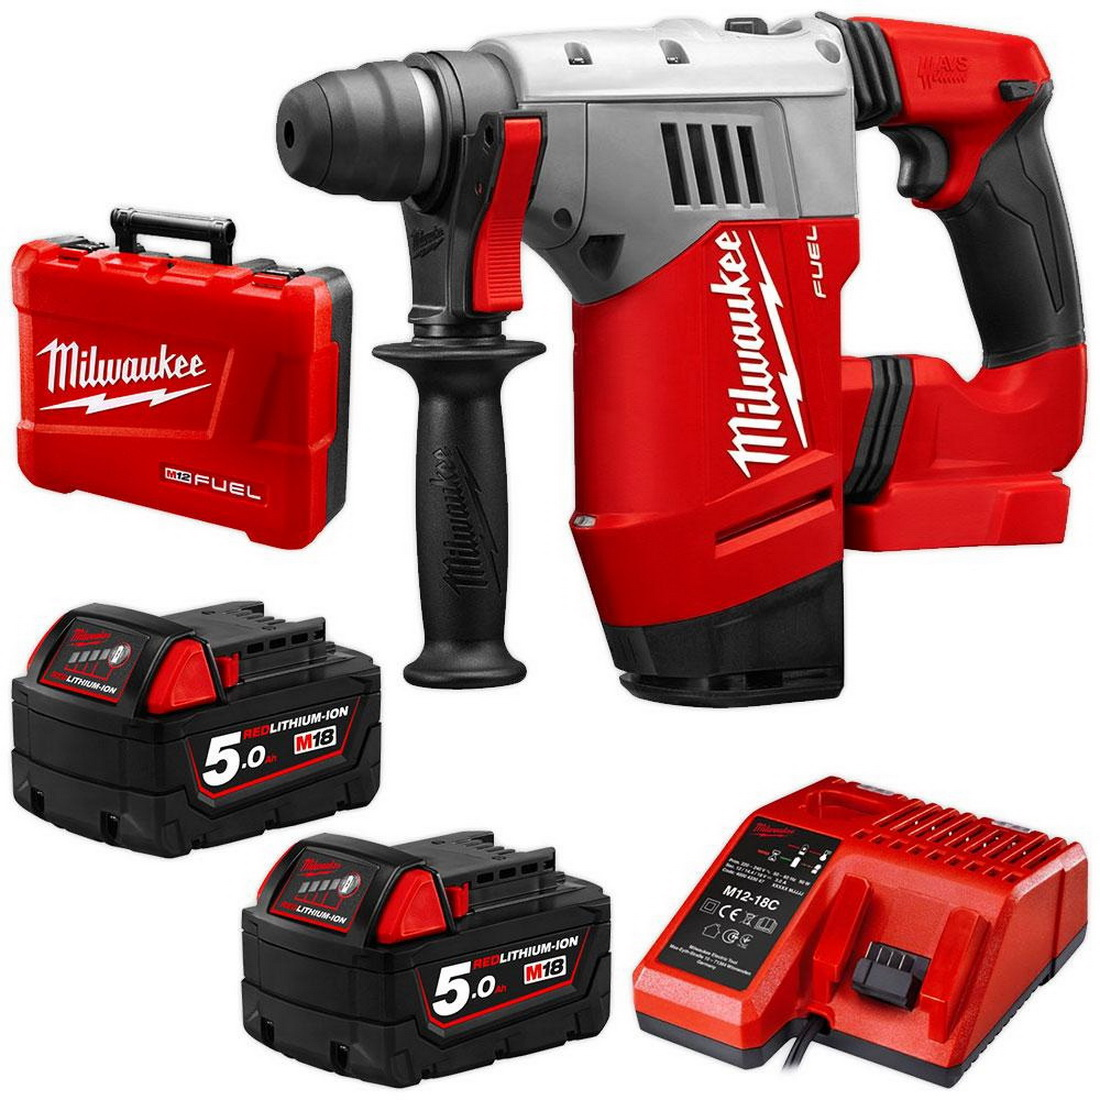 M18 FUEL SDS Plus Cordless Rotary Hammer Combo Kit 28mm 5.0Ah